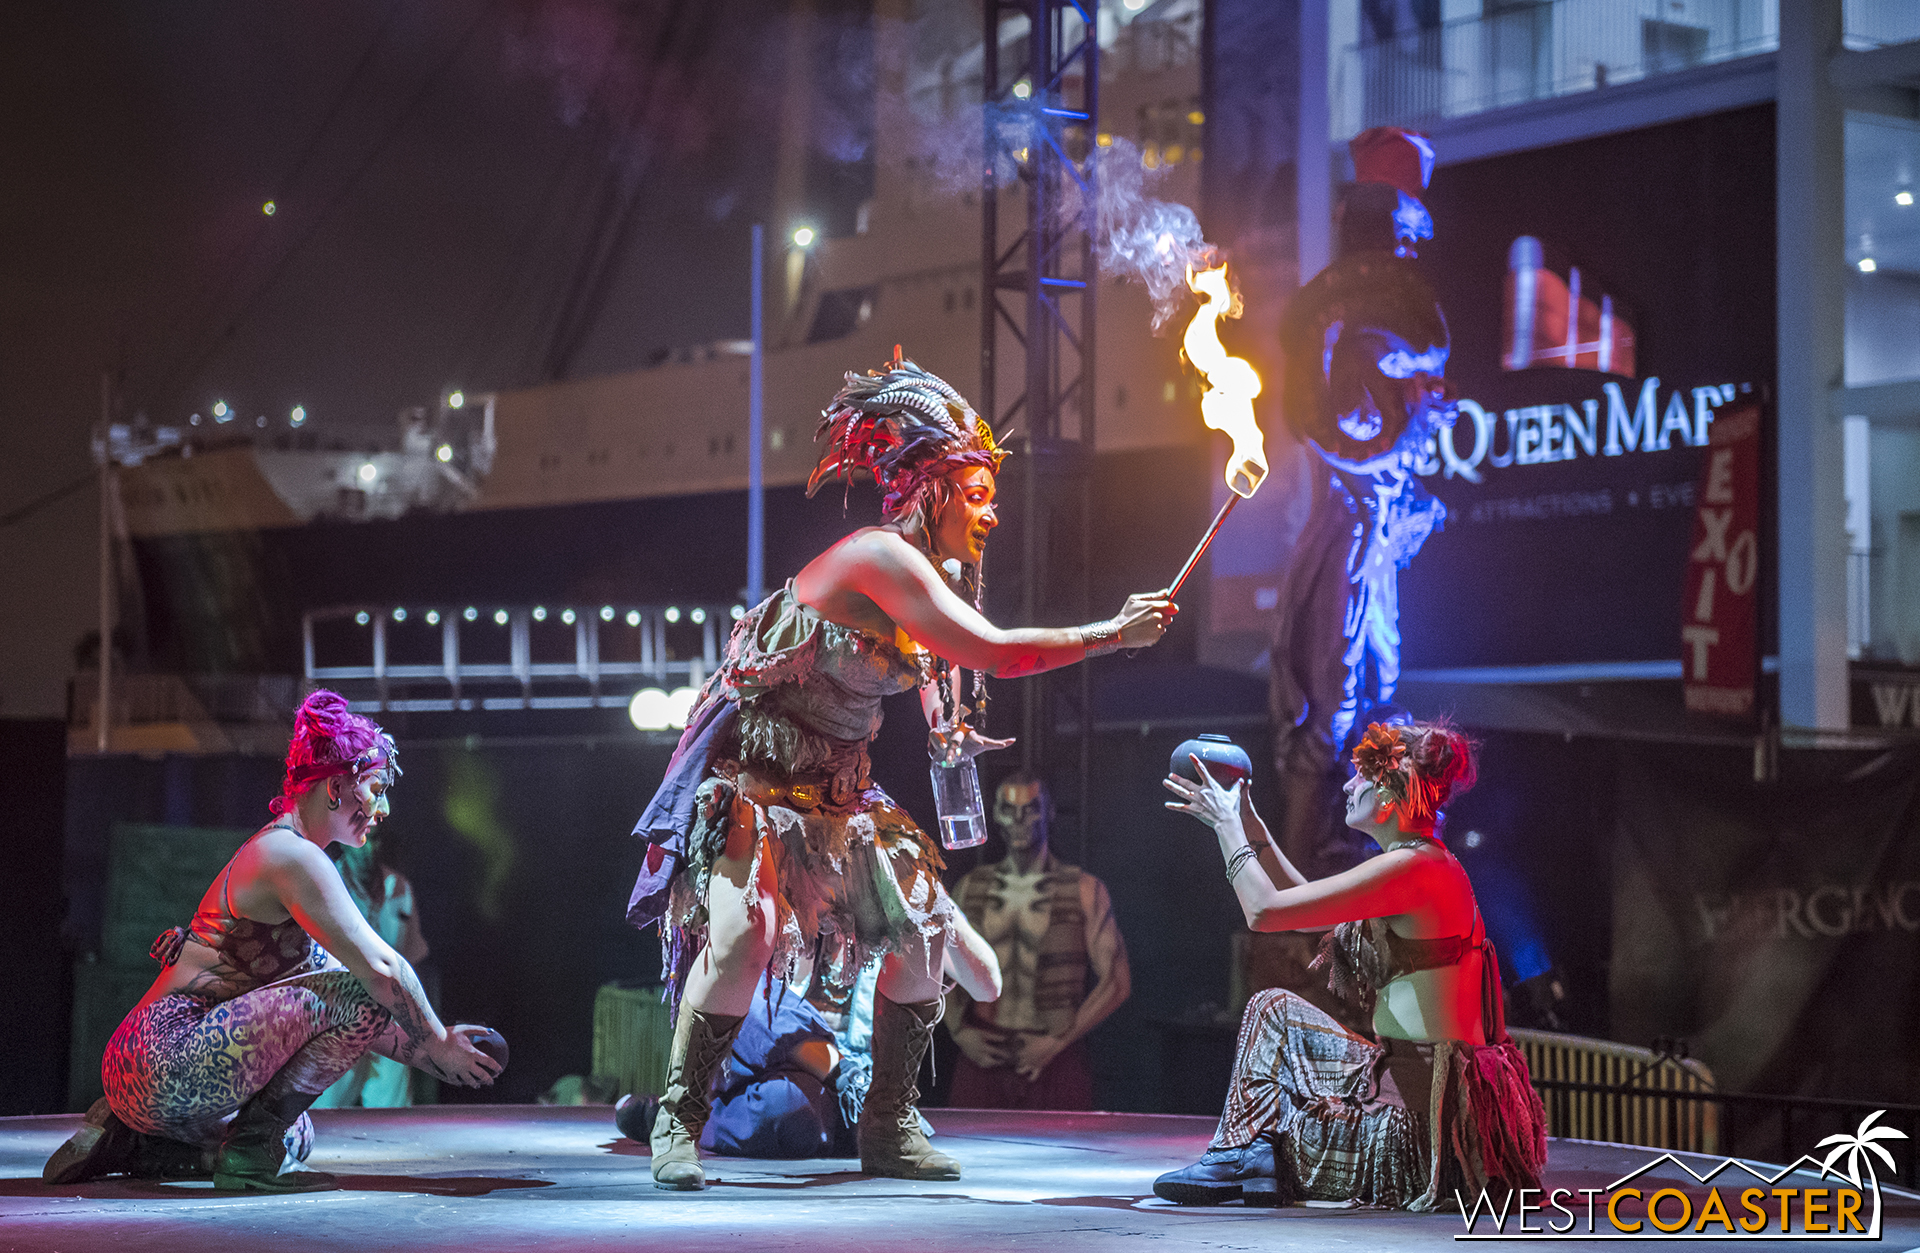 The Voodoo Priestess bequeaths fire to various performers.